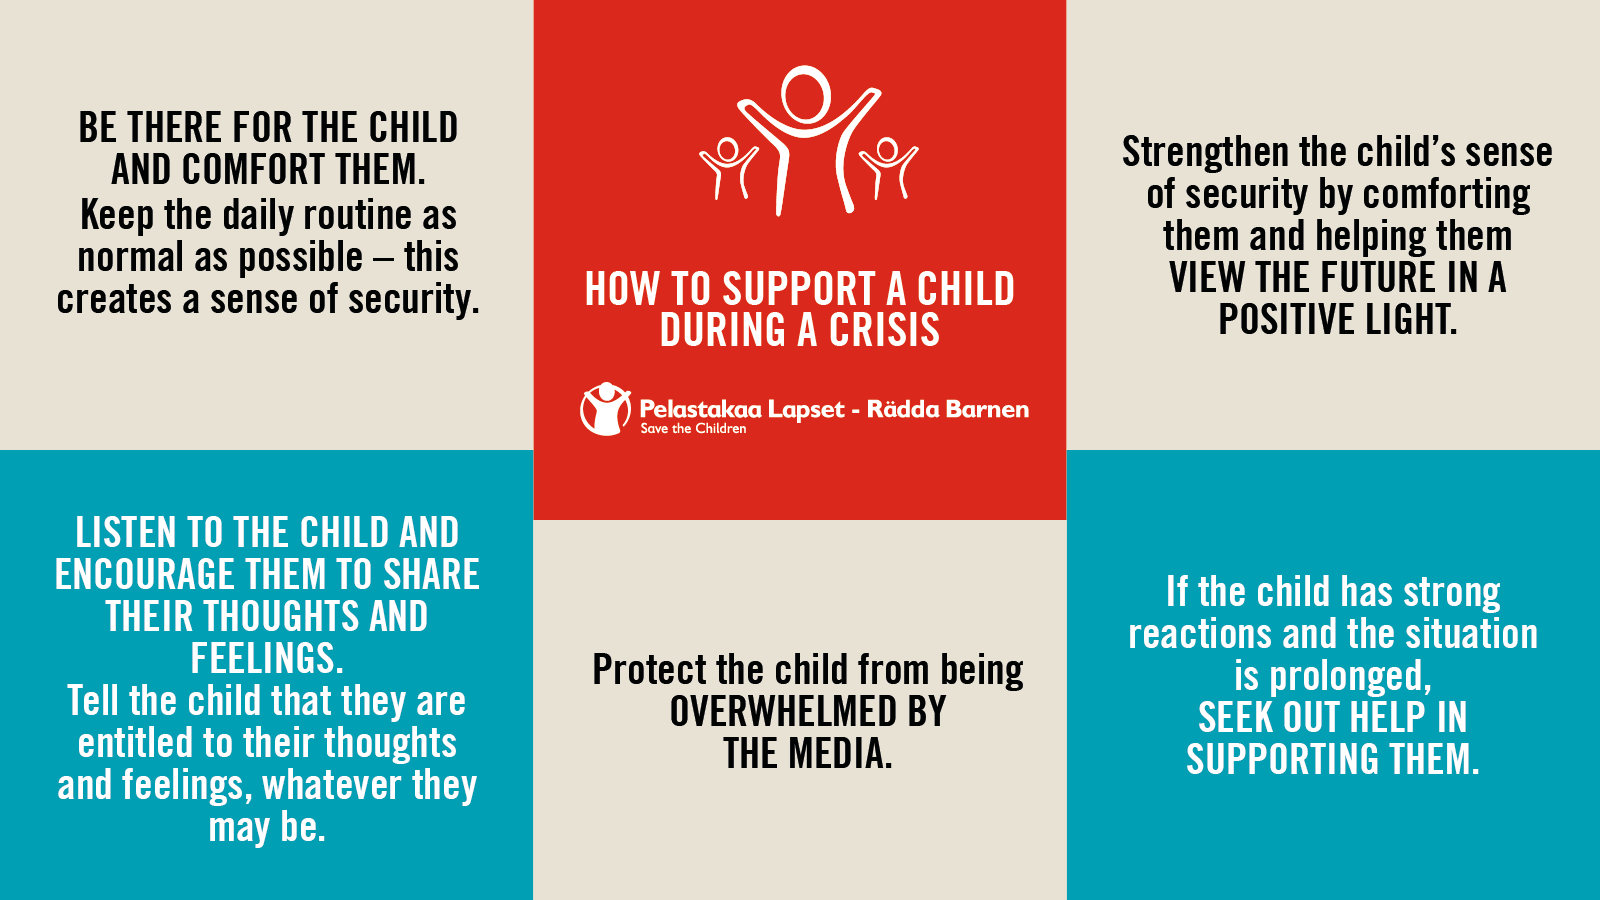 Supporting children and young people during crisis